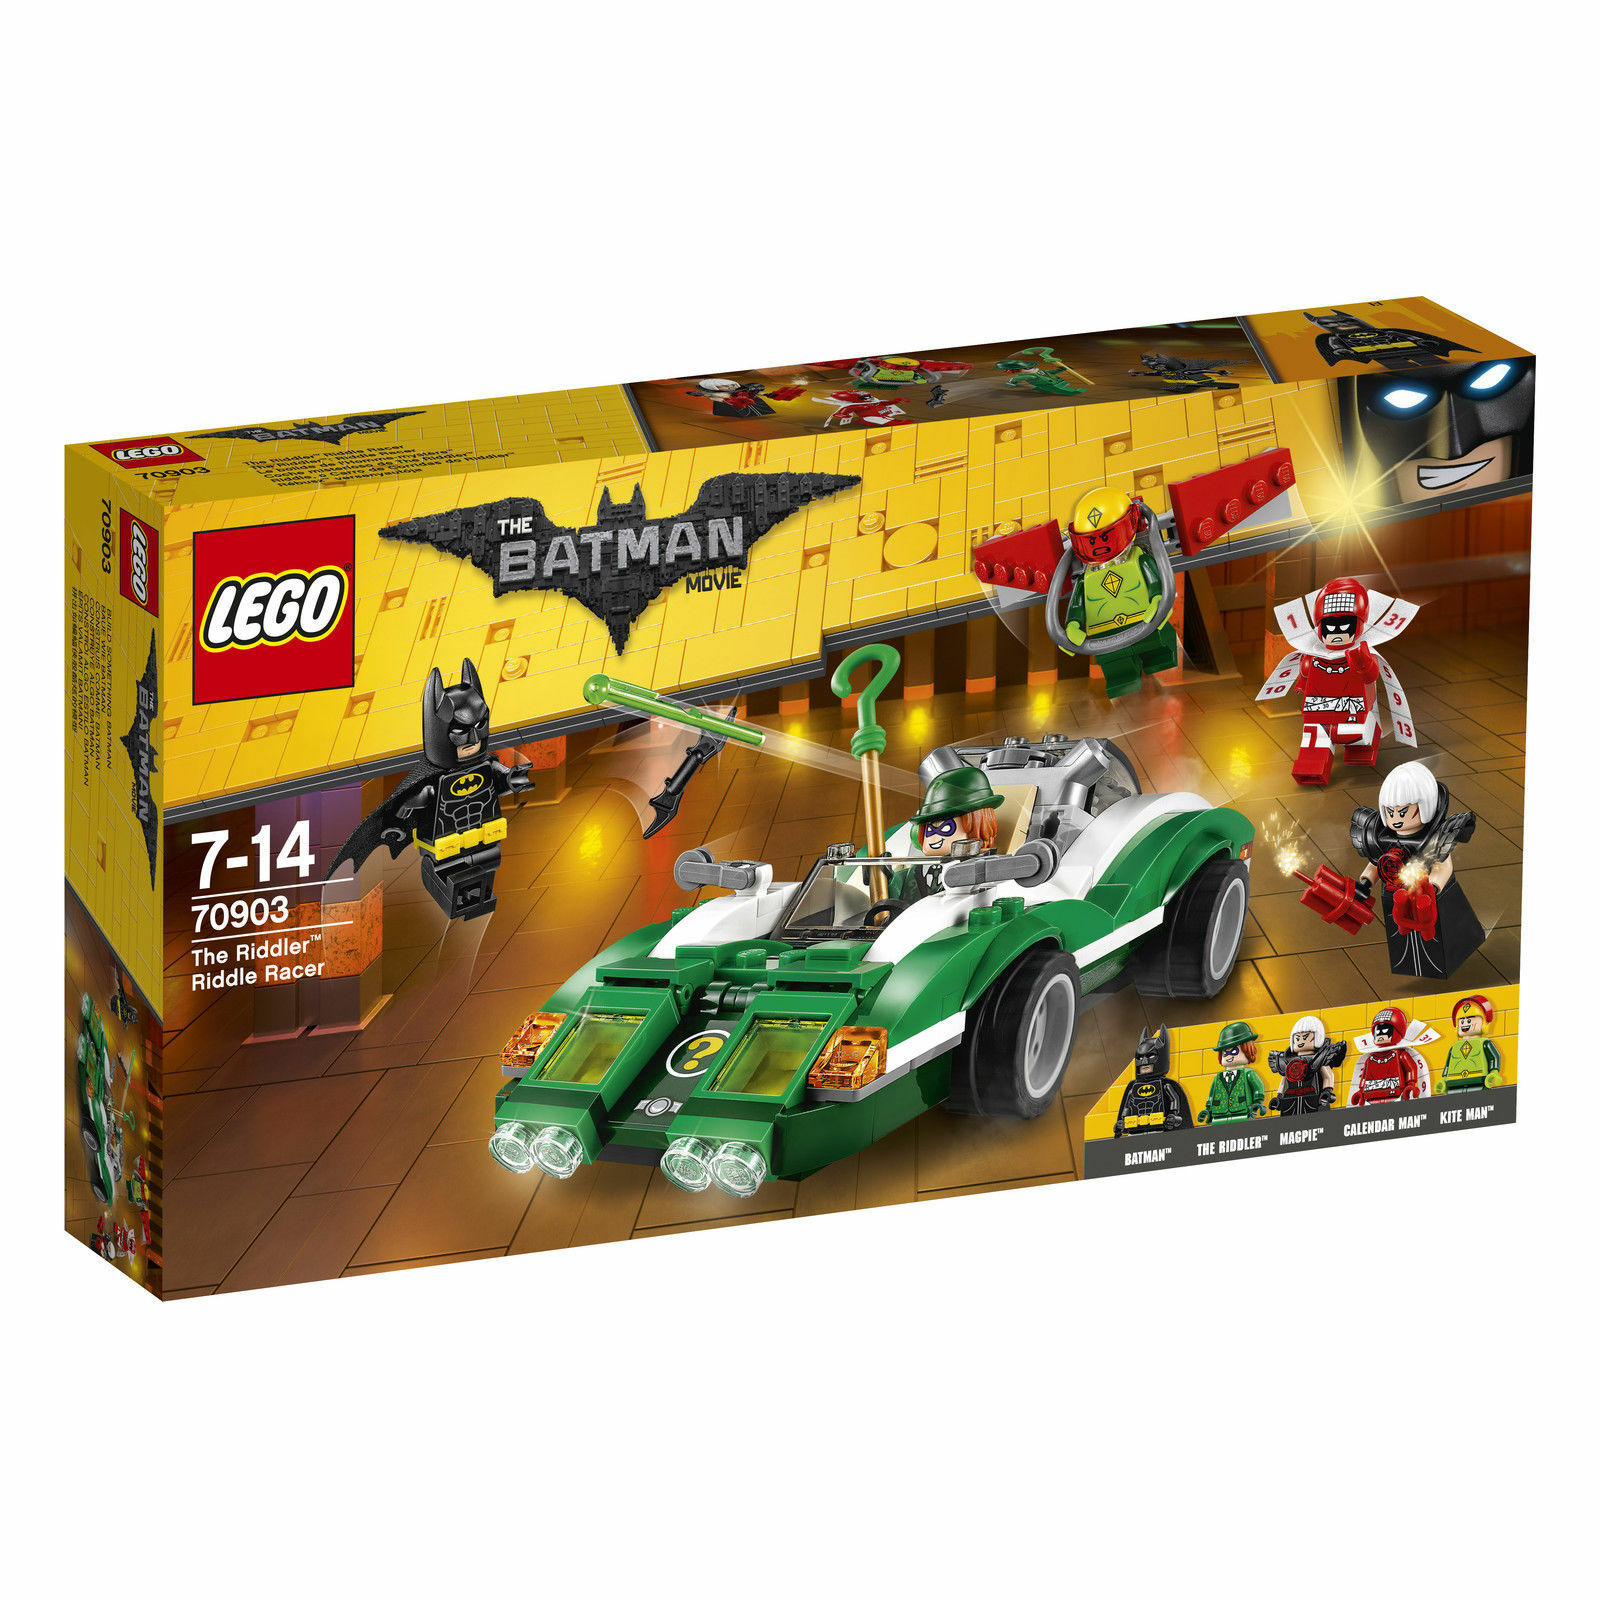 LEGO 70903 Batman Movie The Riddler Riddle Racer Batman Toy